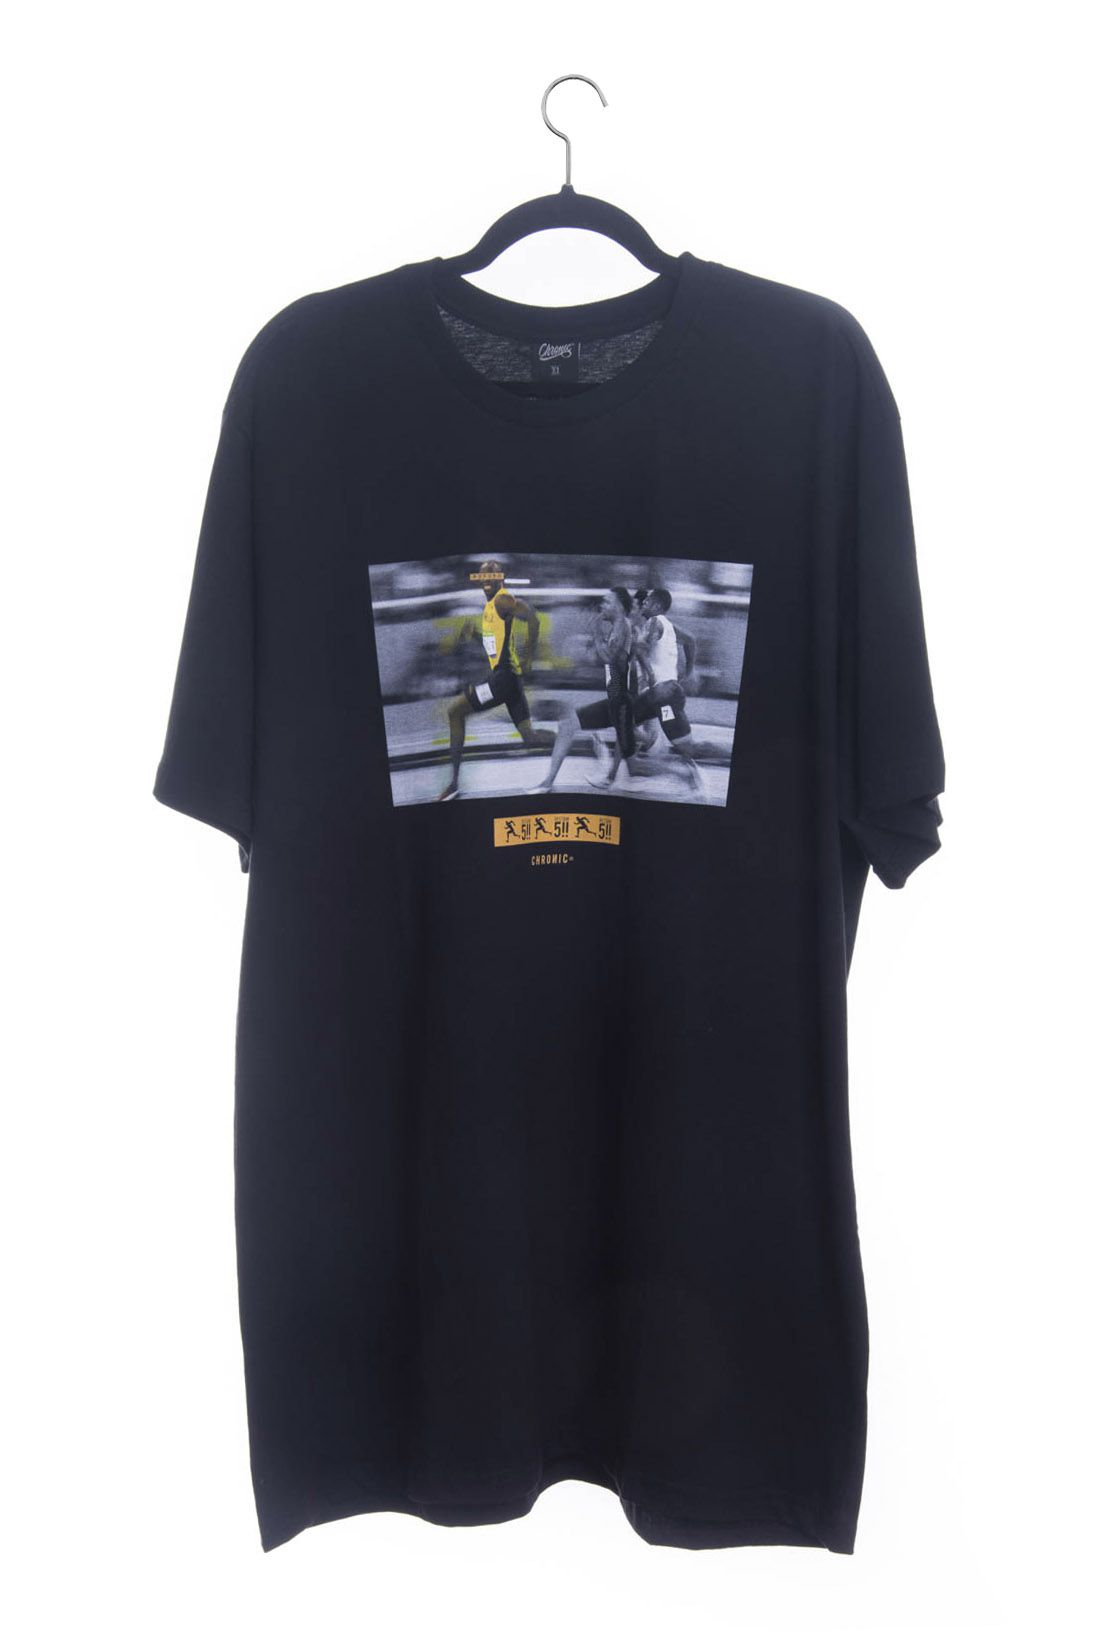 Camiseta Extra Usain Bolt Restam Cinco Chronic